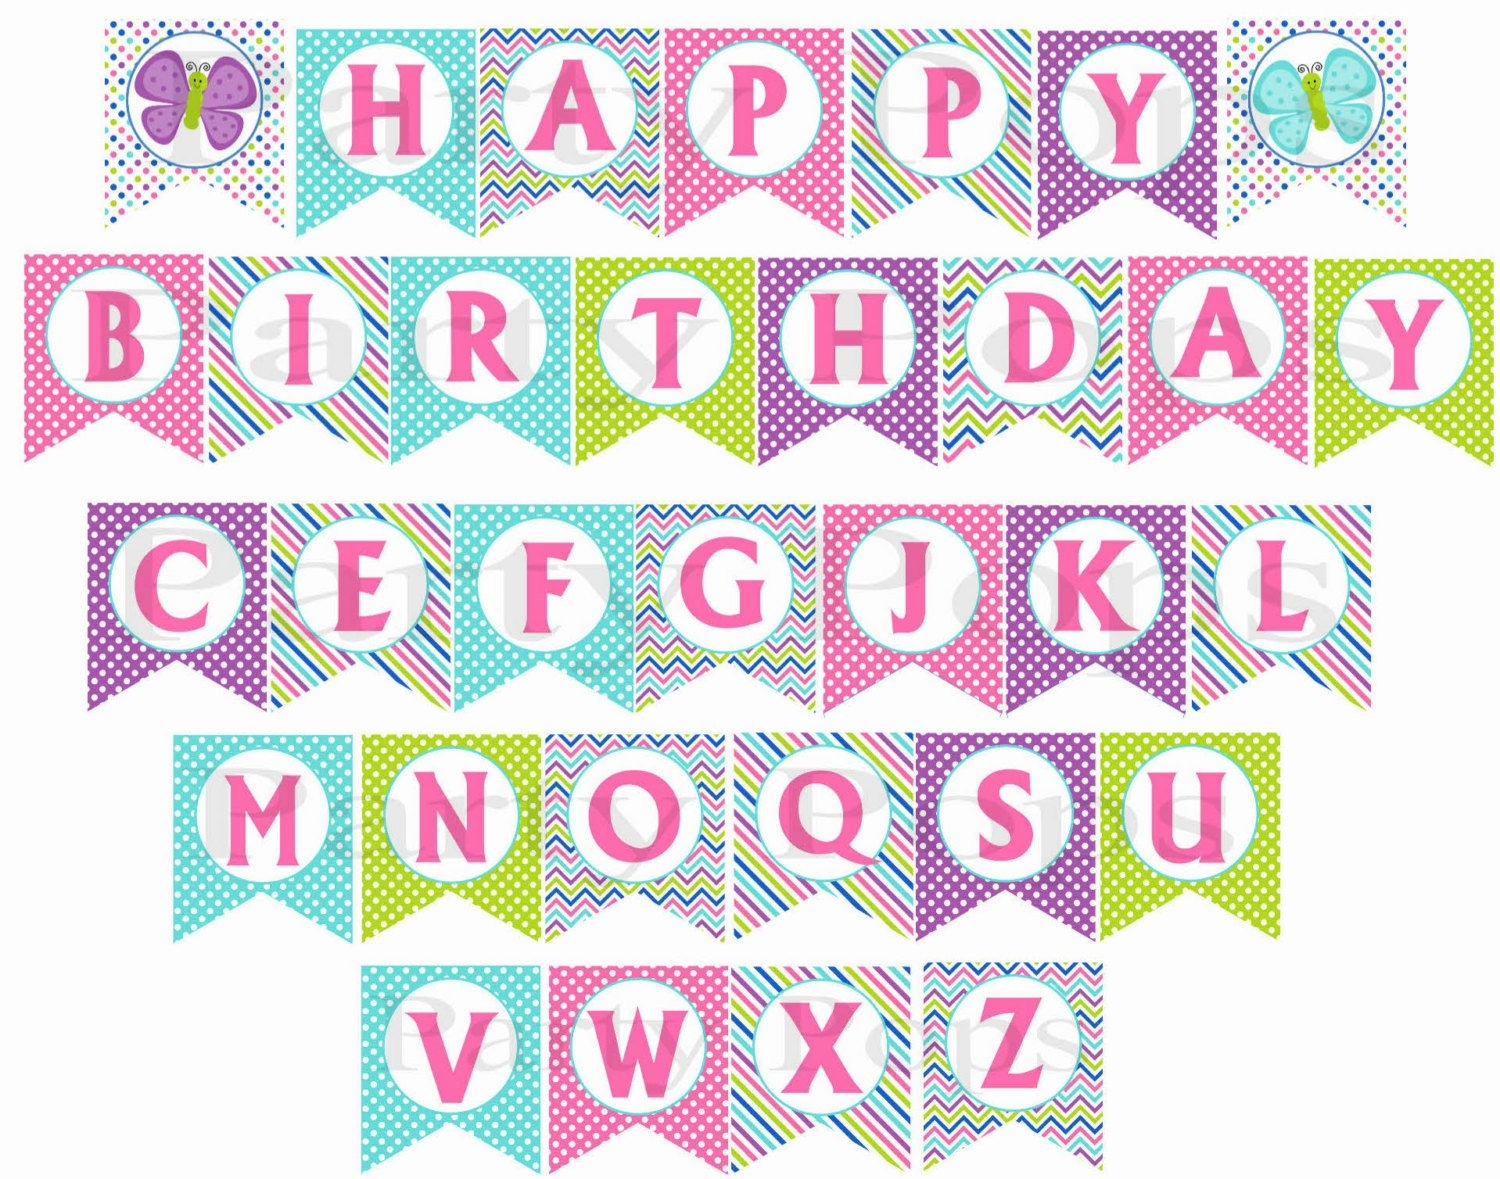 free birthday banners personalized with photo ; free-printable-birthday-banners-personalized-maginezart-throughout-free-printable-birthday-banners-personalized